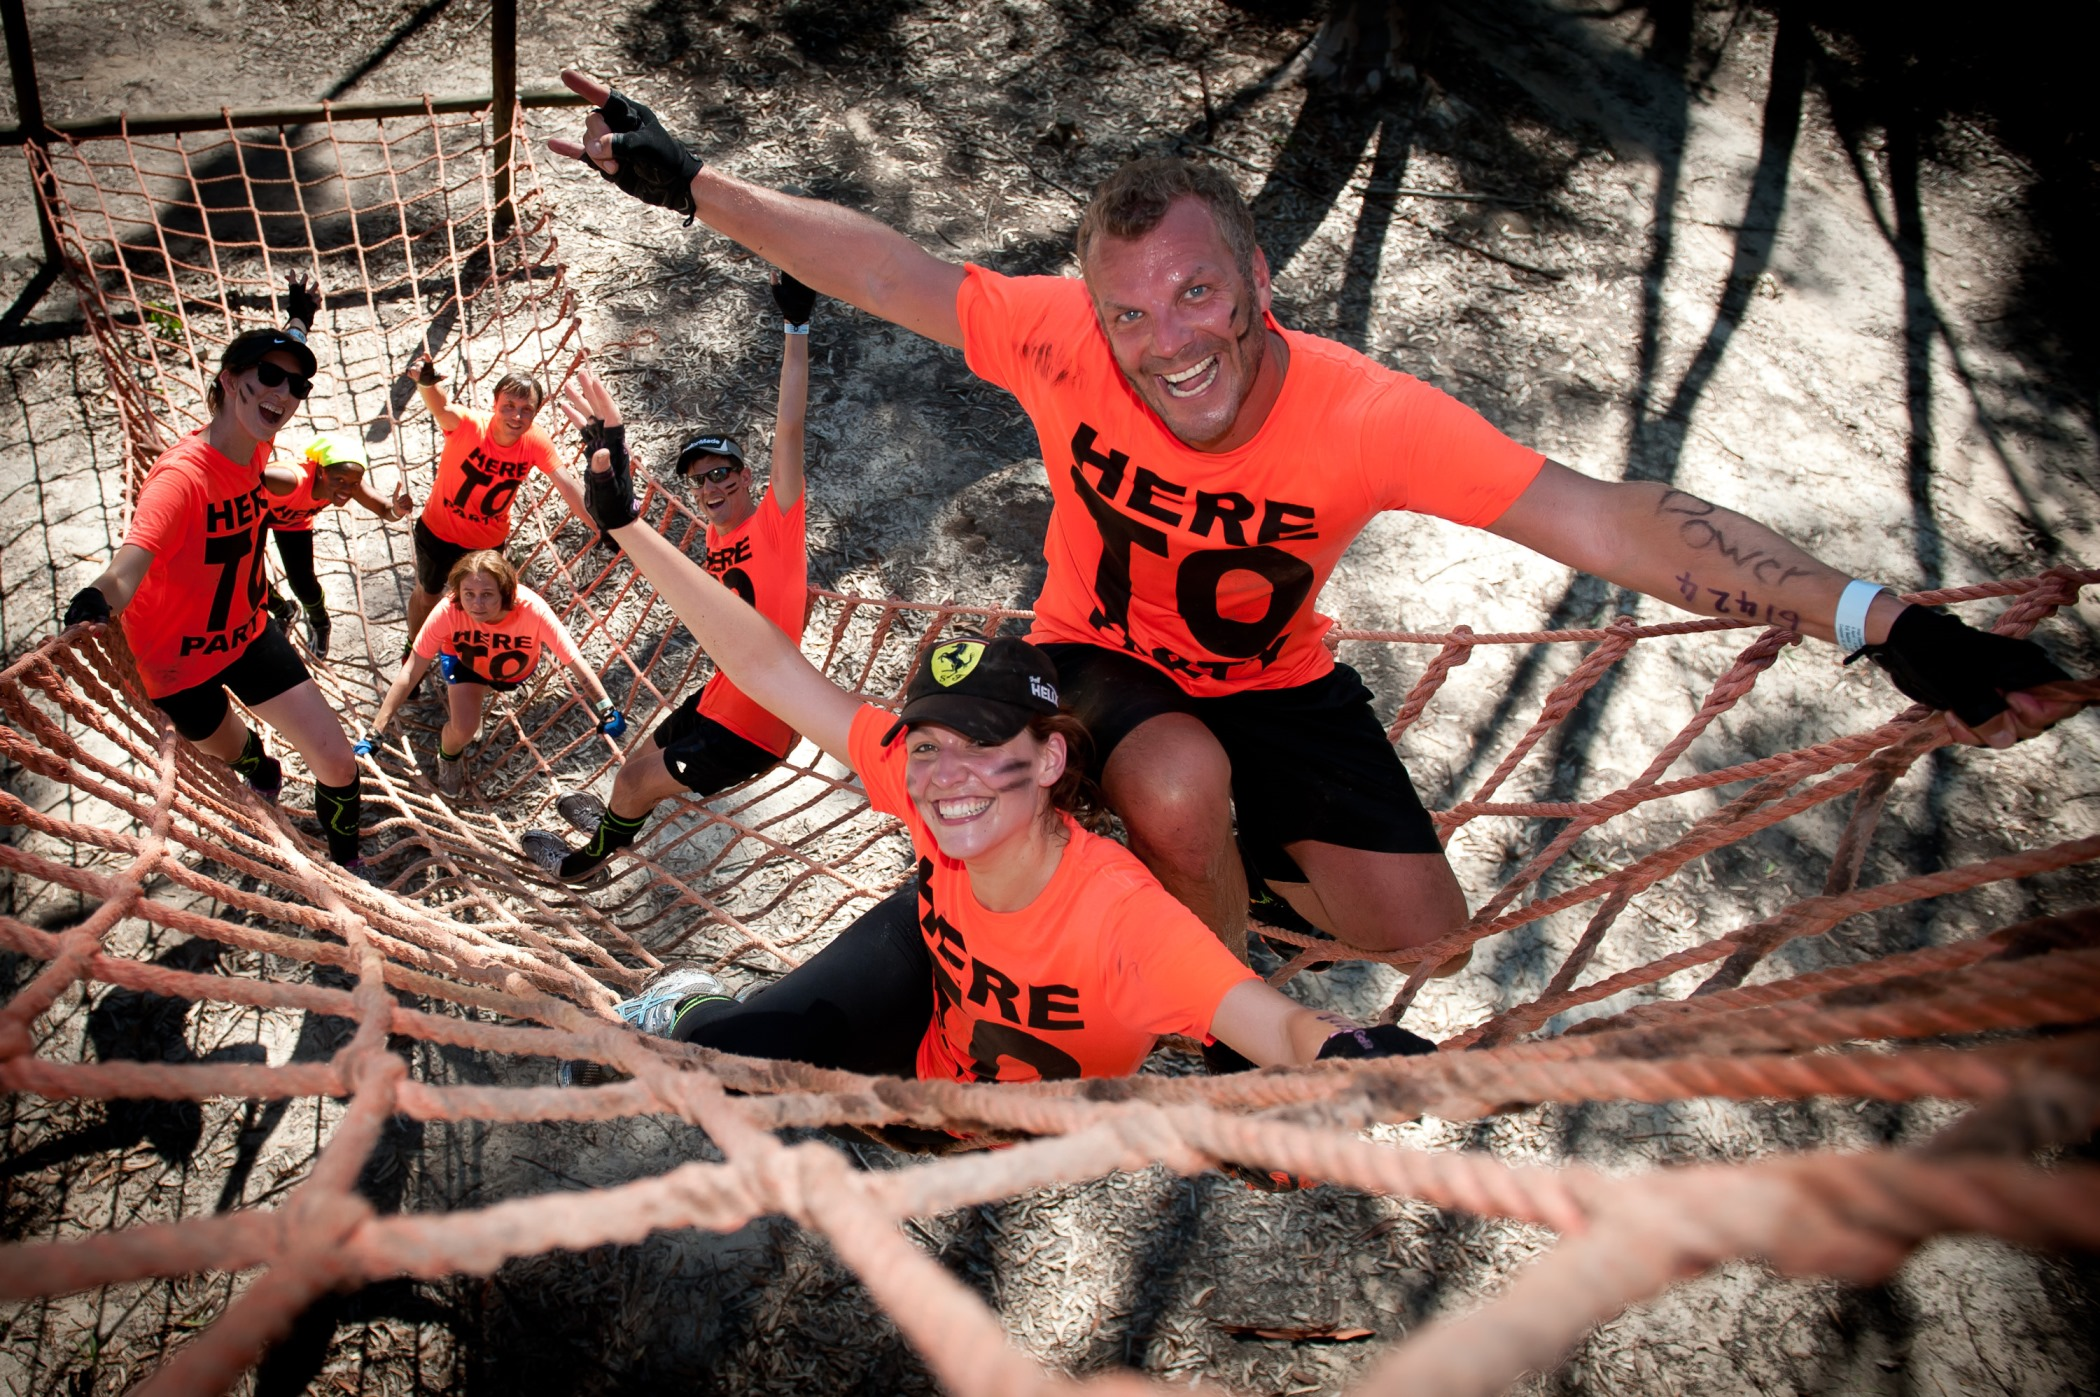 Seen here:  Participants in action during the IMPI Challenge earlier this year.  PHOTO CREDIT:  Cherie Vale / NEWSPORT MEDIA